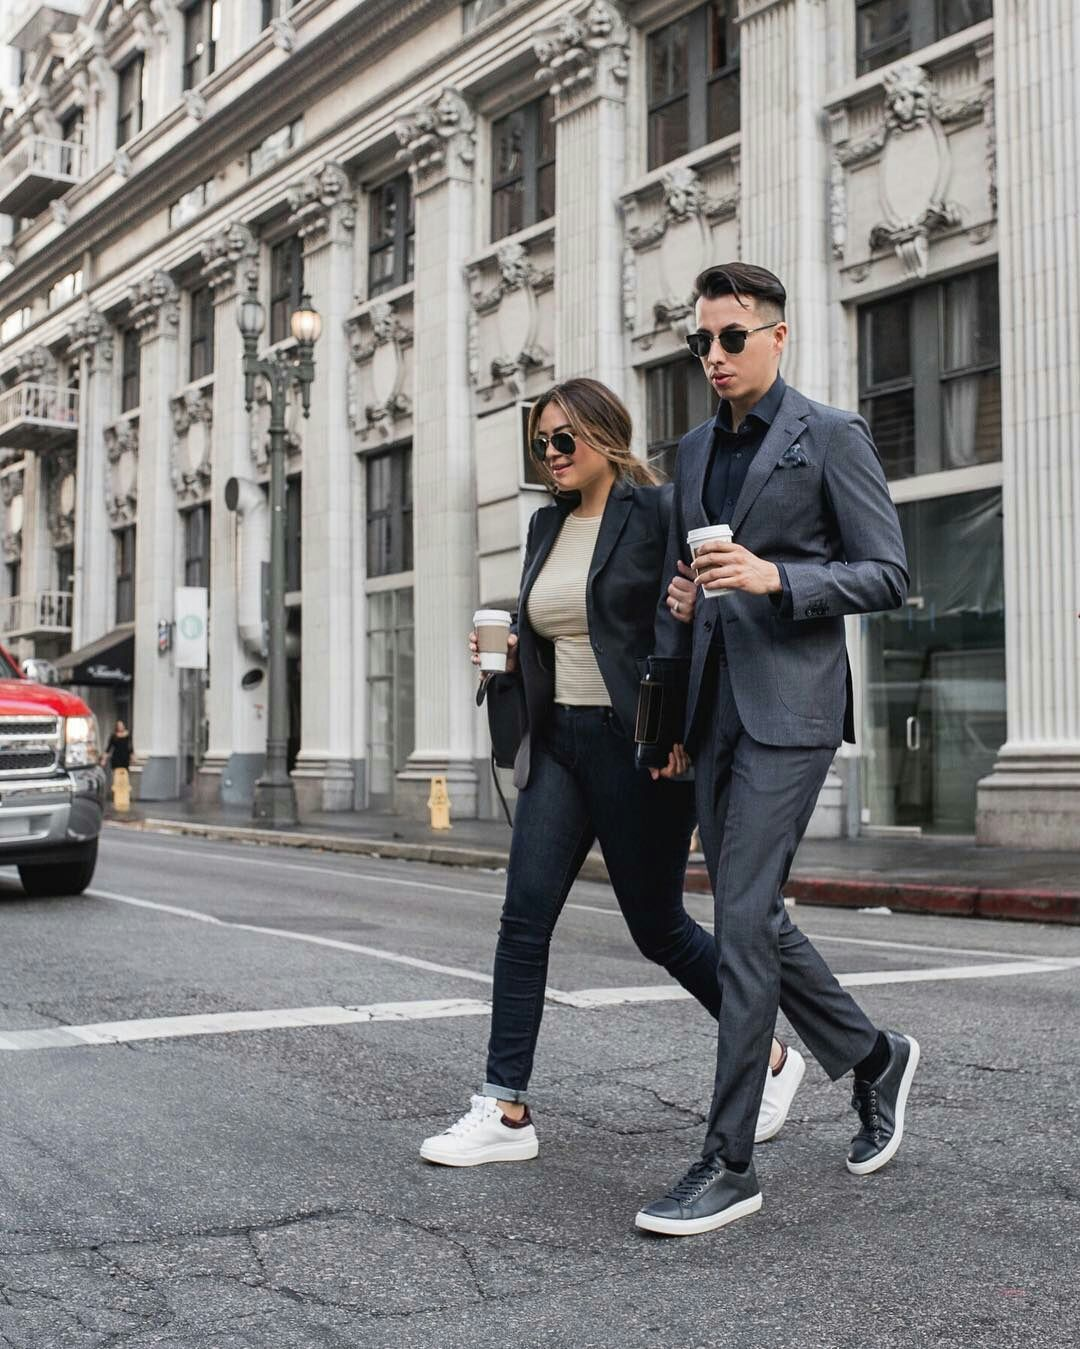 On Trend And Elegant Looks For: 8 Elegant & Sharp Street Style Looks To Steal From This